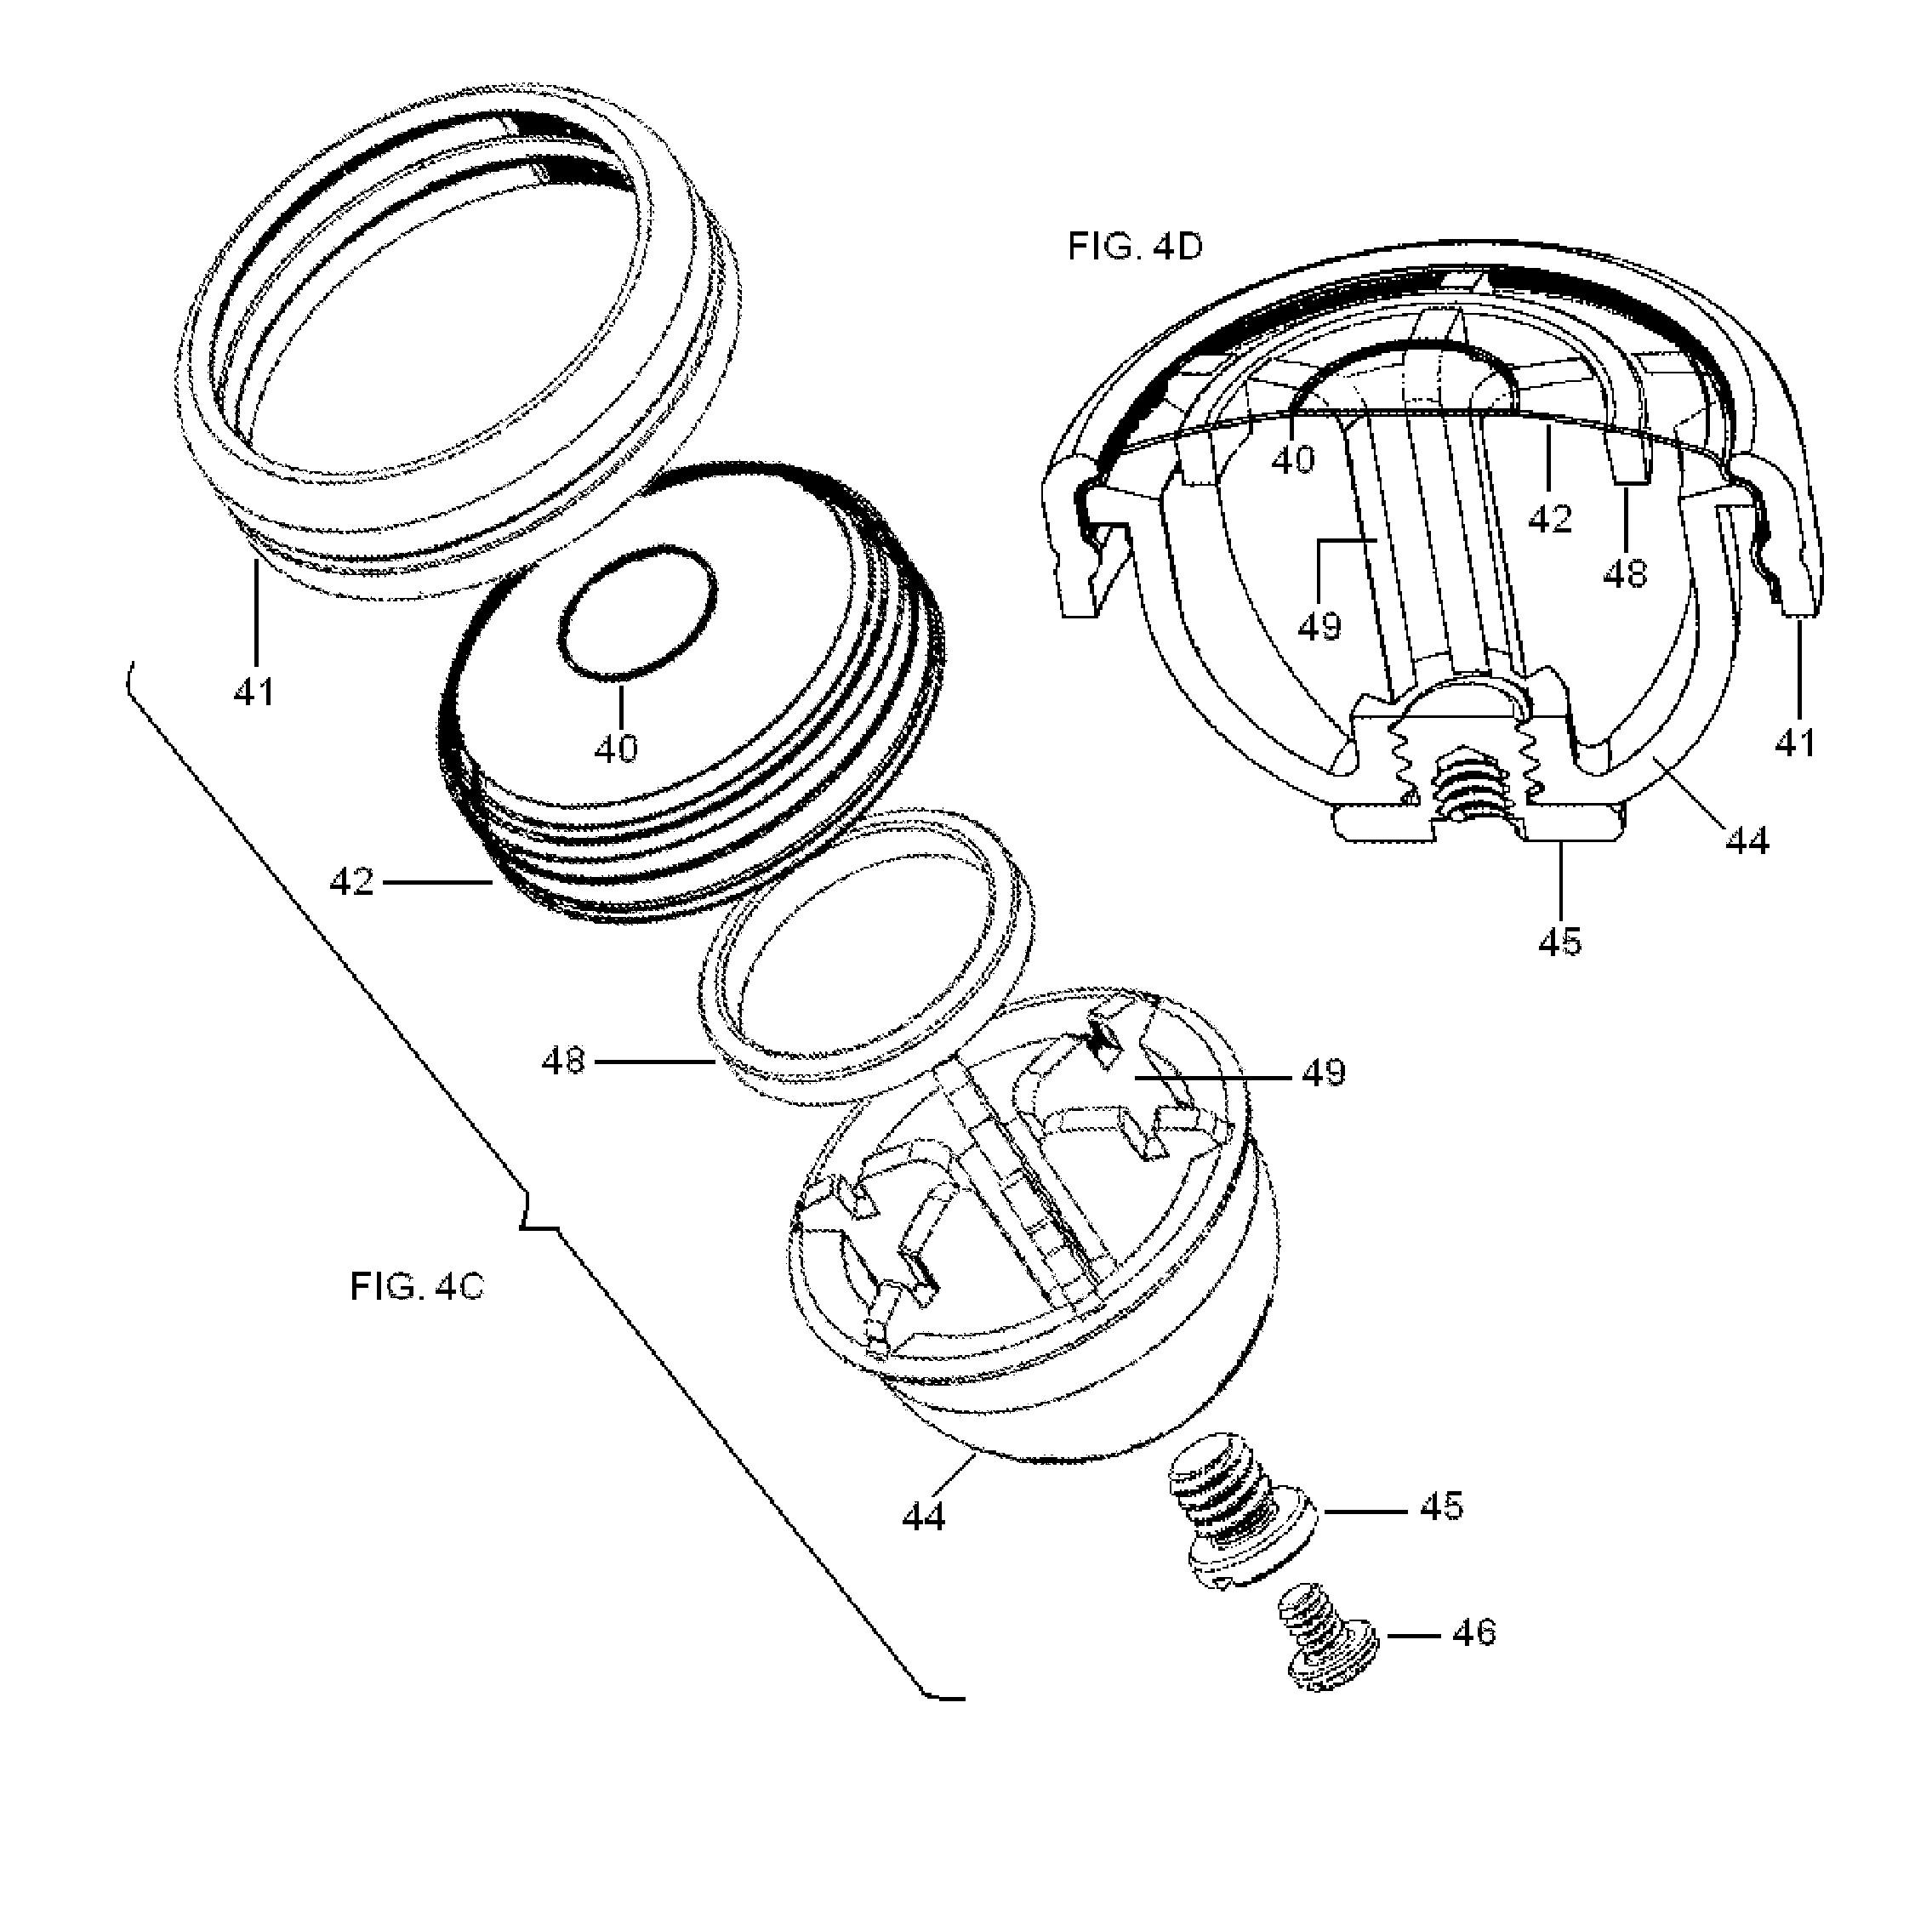 Patent Us 8676330 B2 1978 Gmc Van Wiring Diagram Ignition Switch 0 Petitions